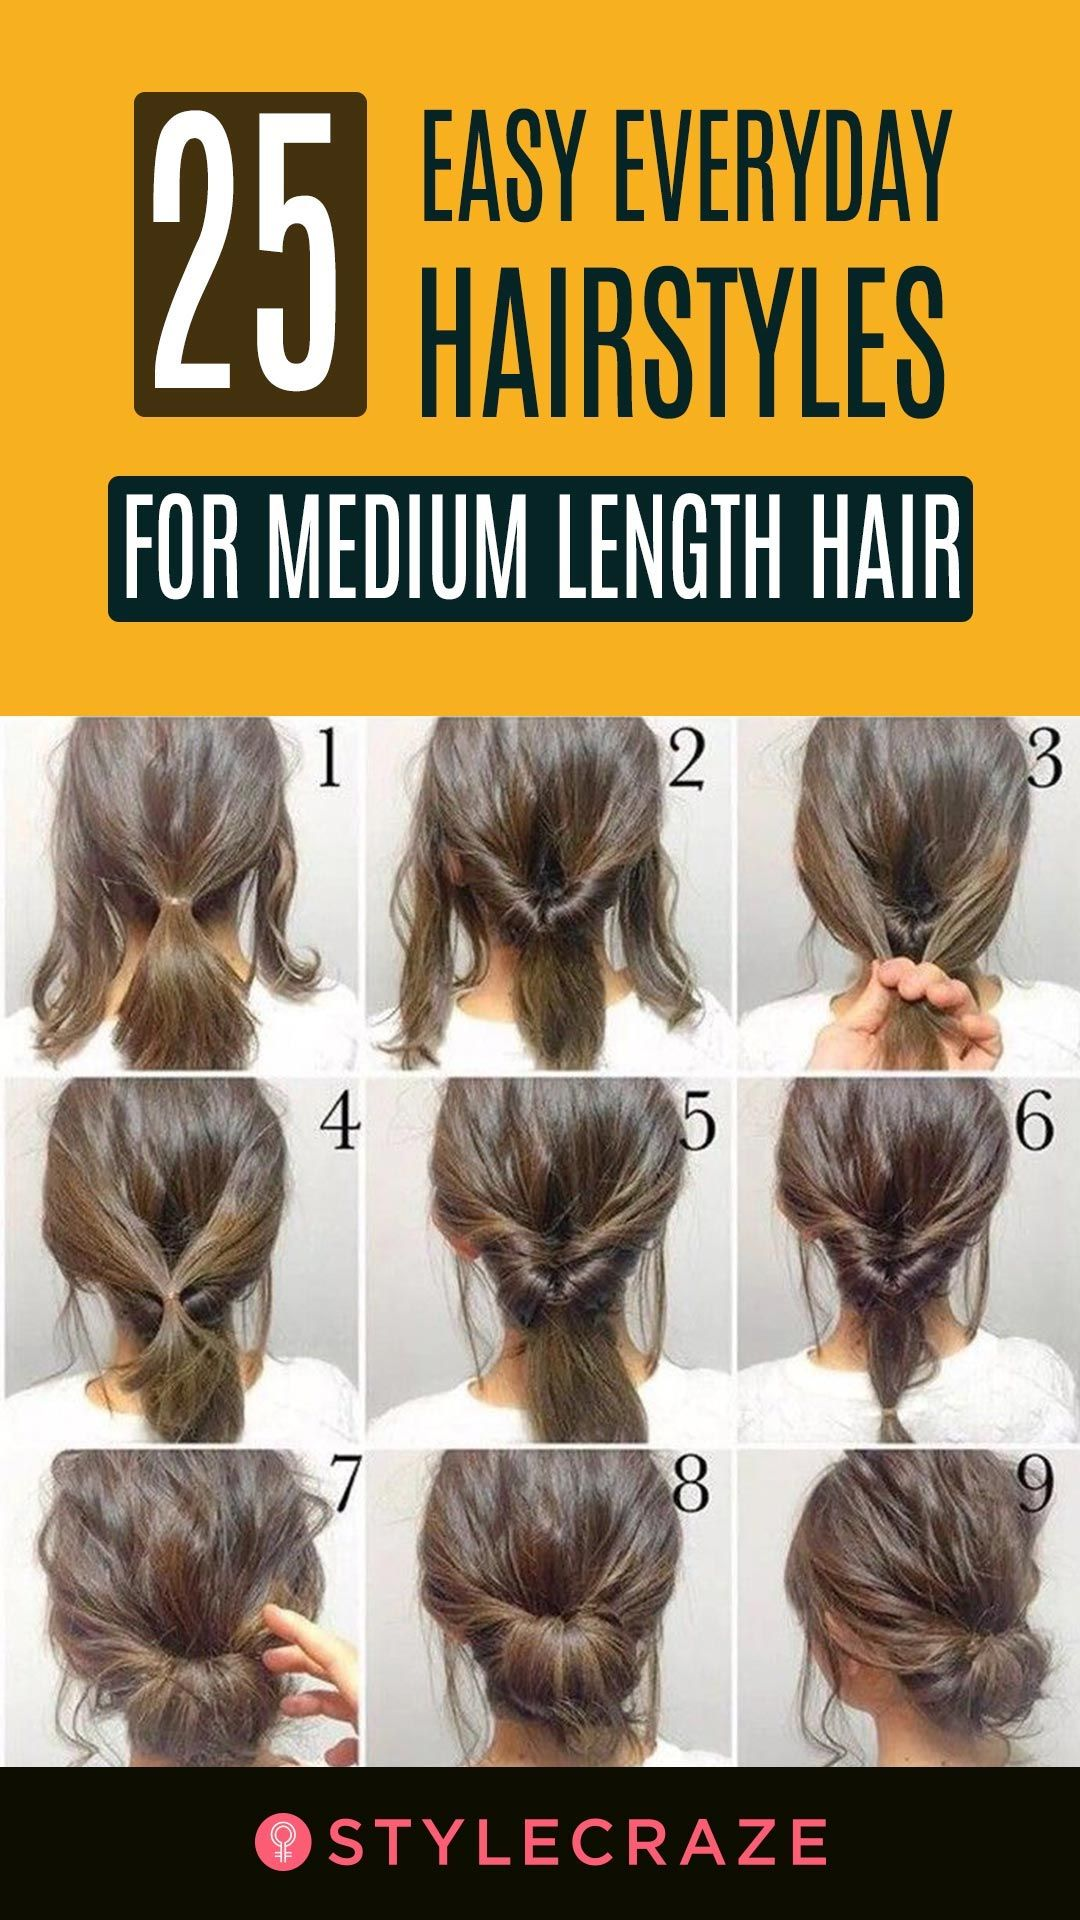 25 Easy Everyday Hairstyles For Medium Length Hair Hairstyles